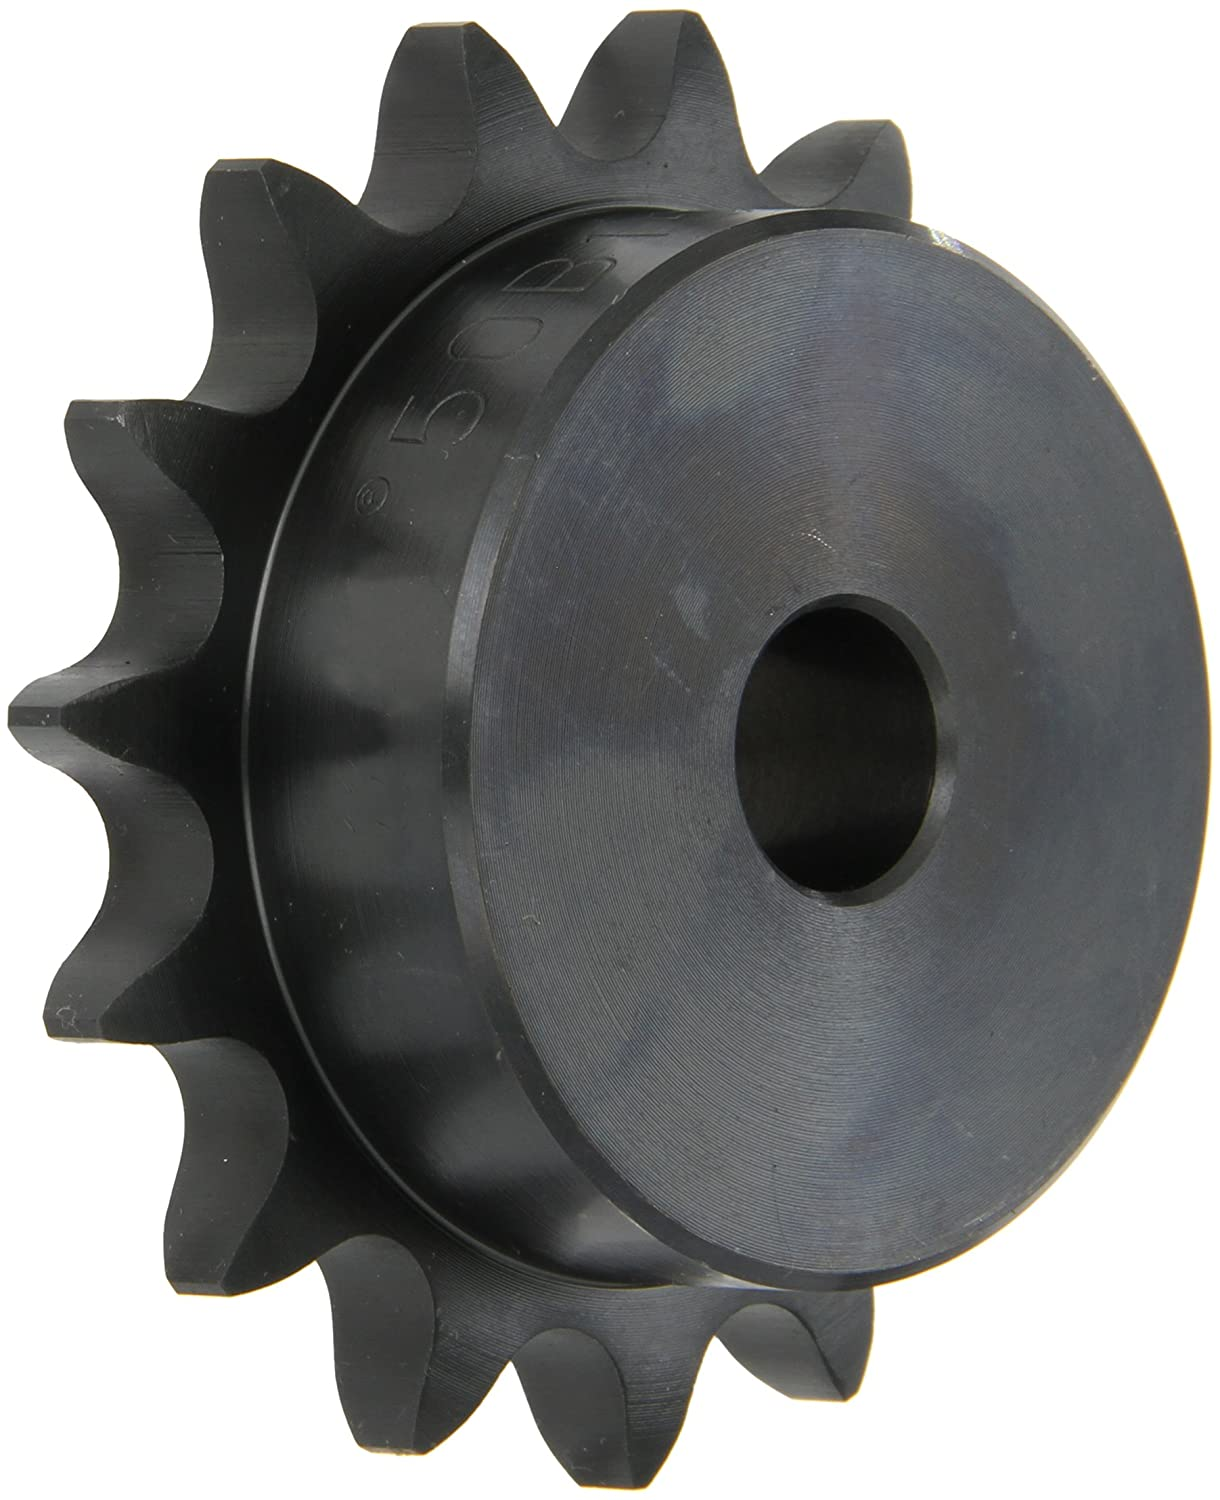 Browning 50B15 Minimum Bore Roller Chain Sprocket, Single Strand, Steel, 5/8' Stocked Bore, 15 Teeth 5/8 Stocked Bore Emerson